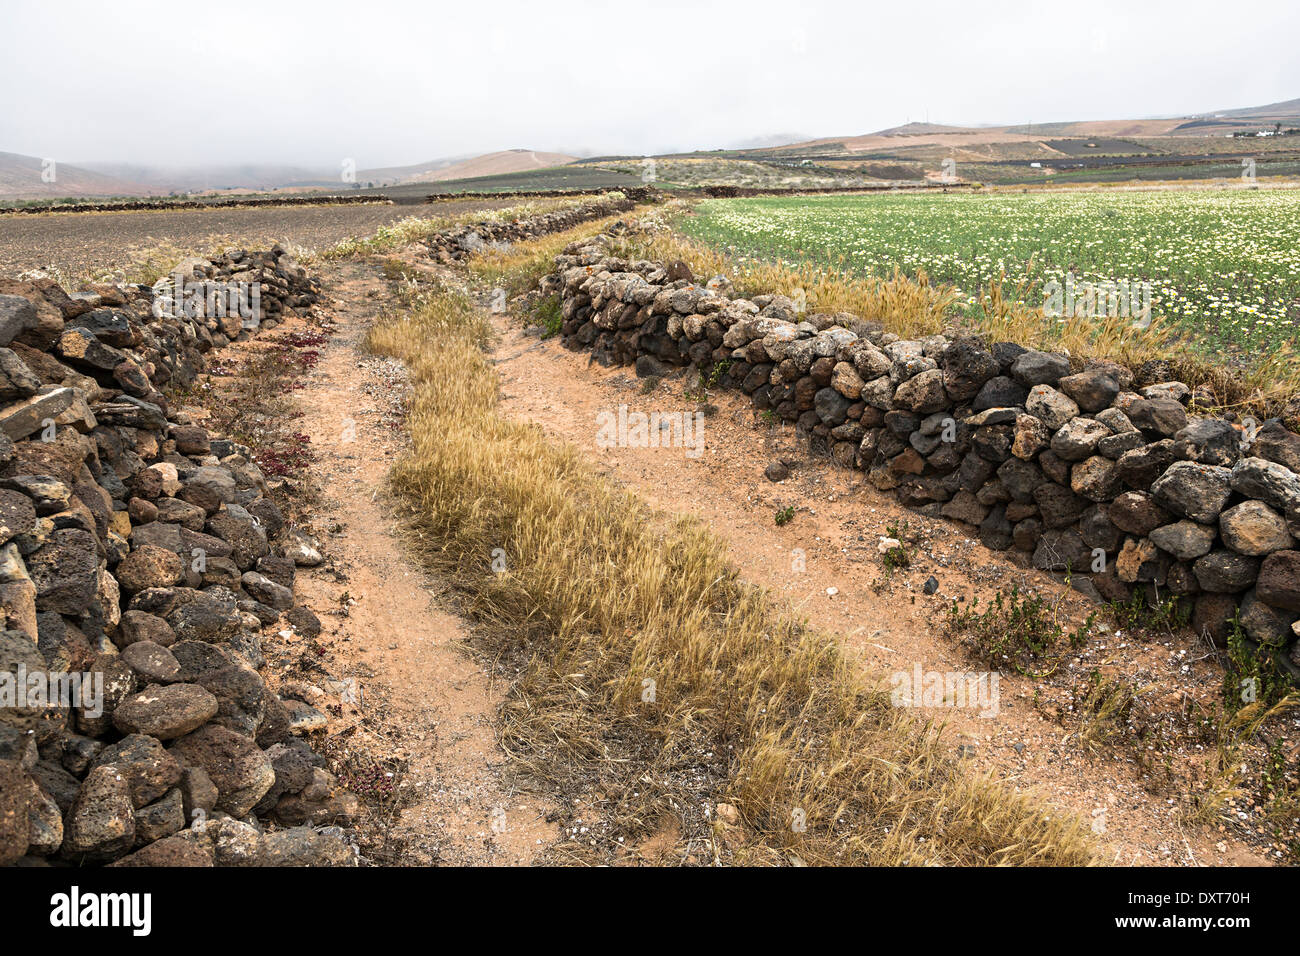 Old track with walls made from pumice, El Mojon, Lanzarote, Canary Islands, Spain - Stock Image